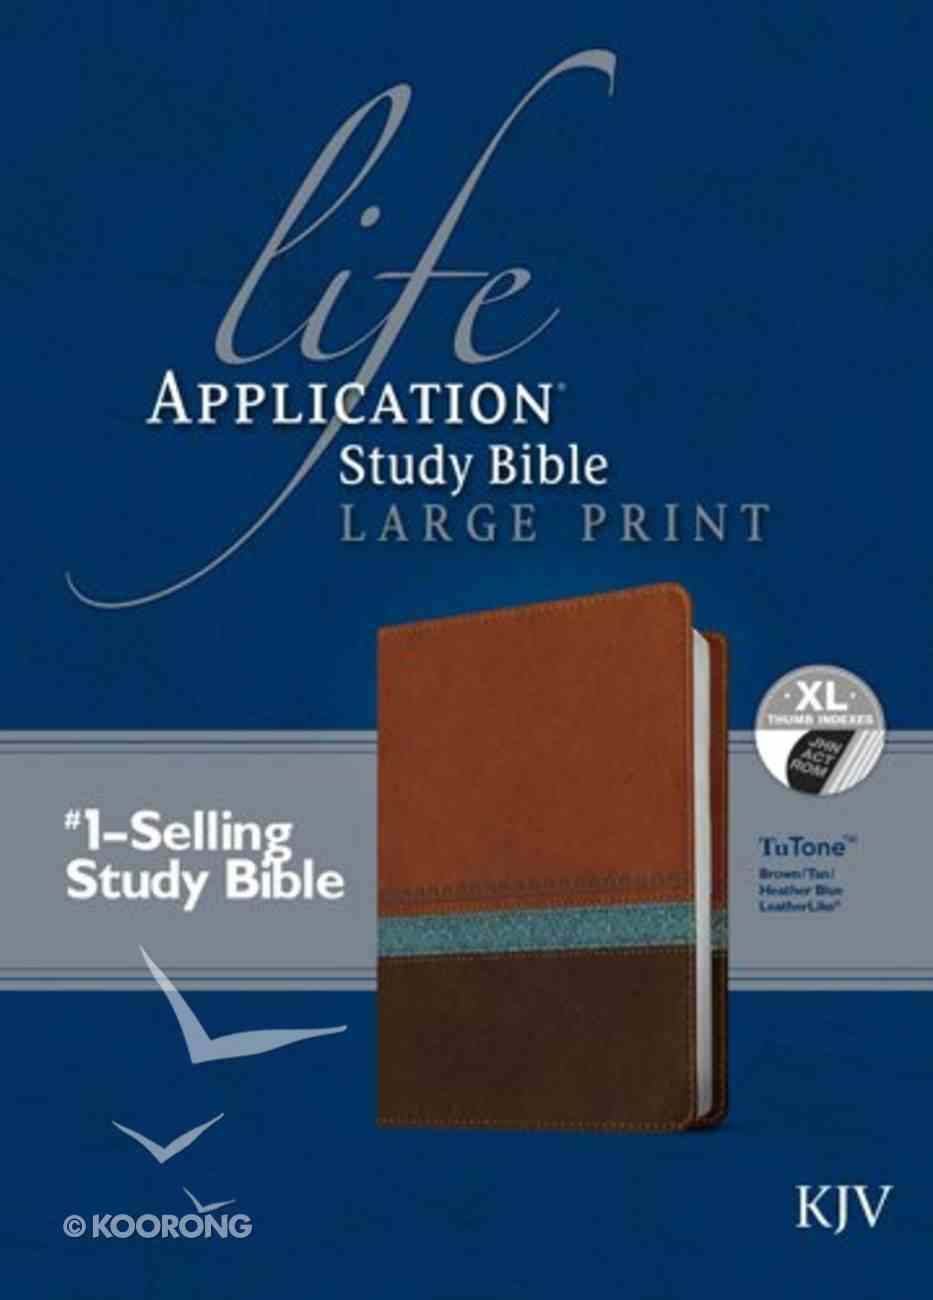 KJV Life Application Study Indexed Bible Large Print Brown/Tan/Heather Blue (Red Letter Edition) Imitation Leather